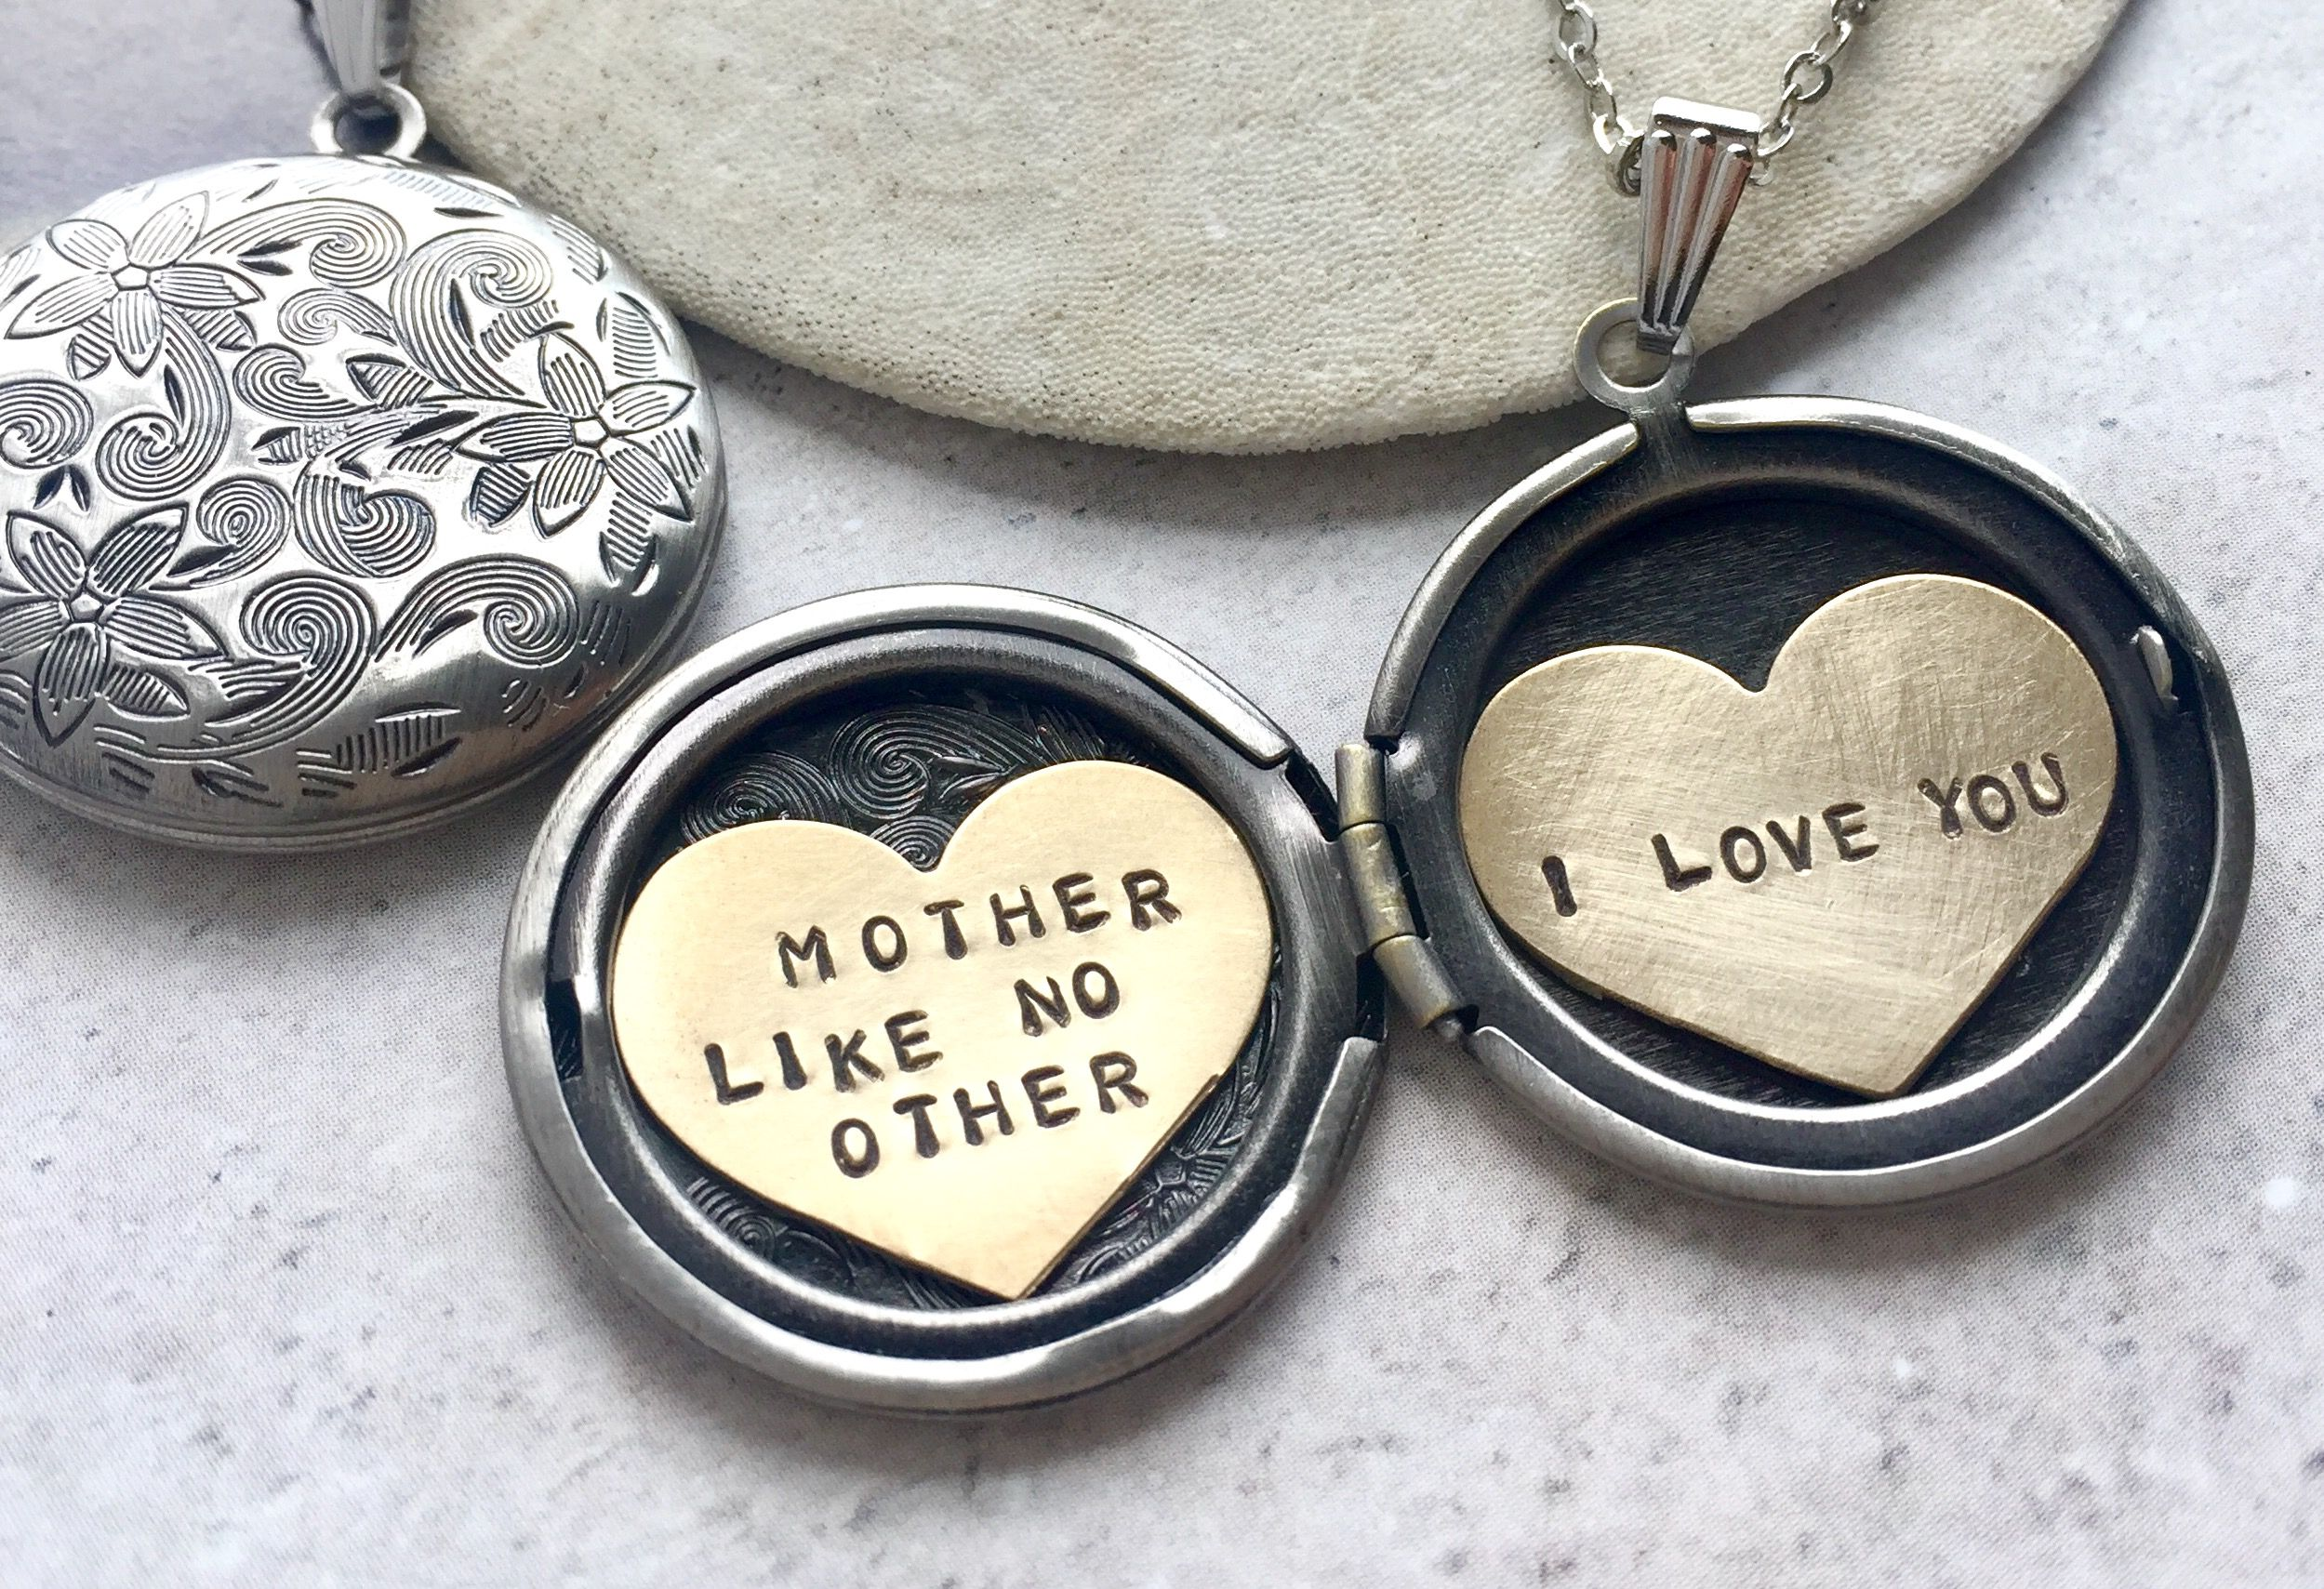 lockets locket jewelry women in promise item love necklaces necklace secret for proposal chain message hidden design unique from sweater pendant ball